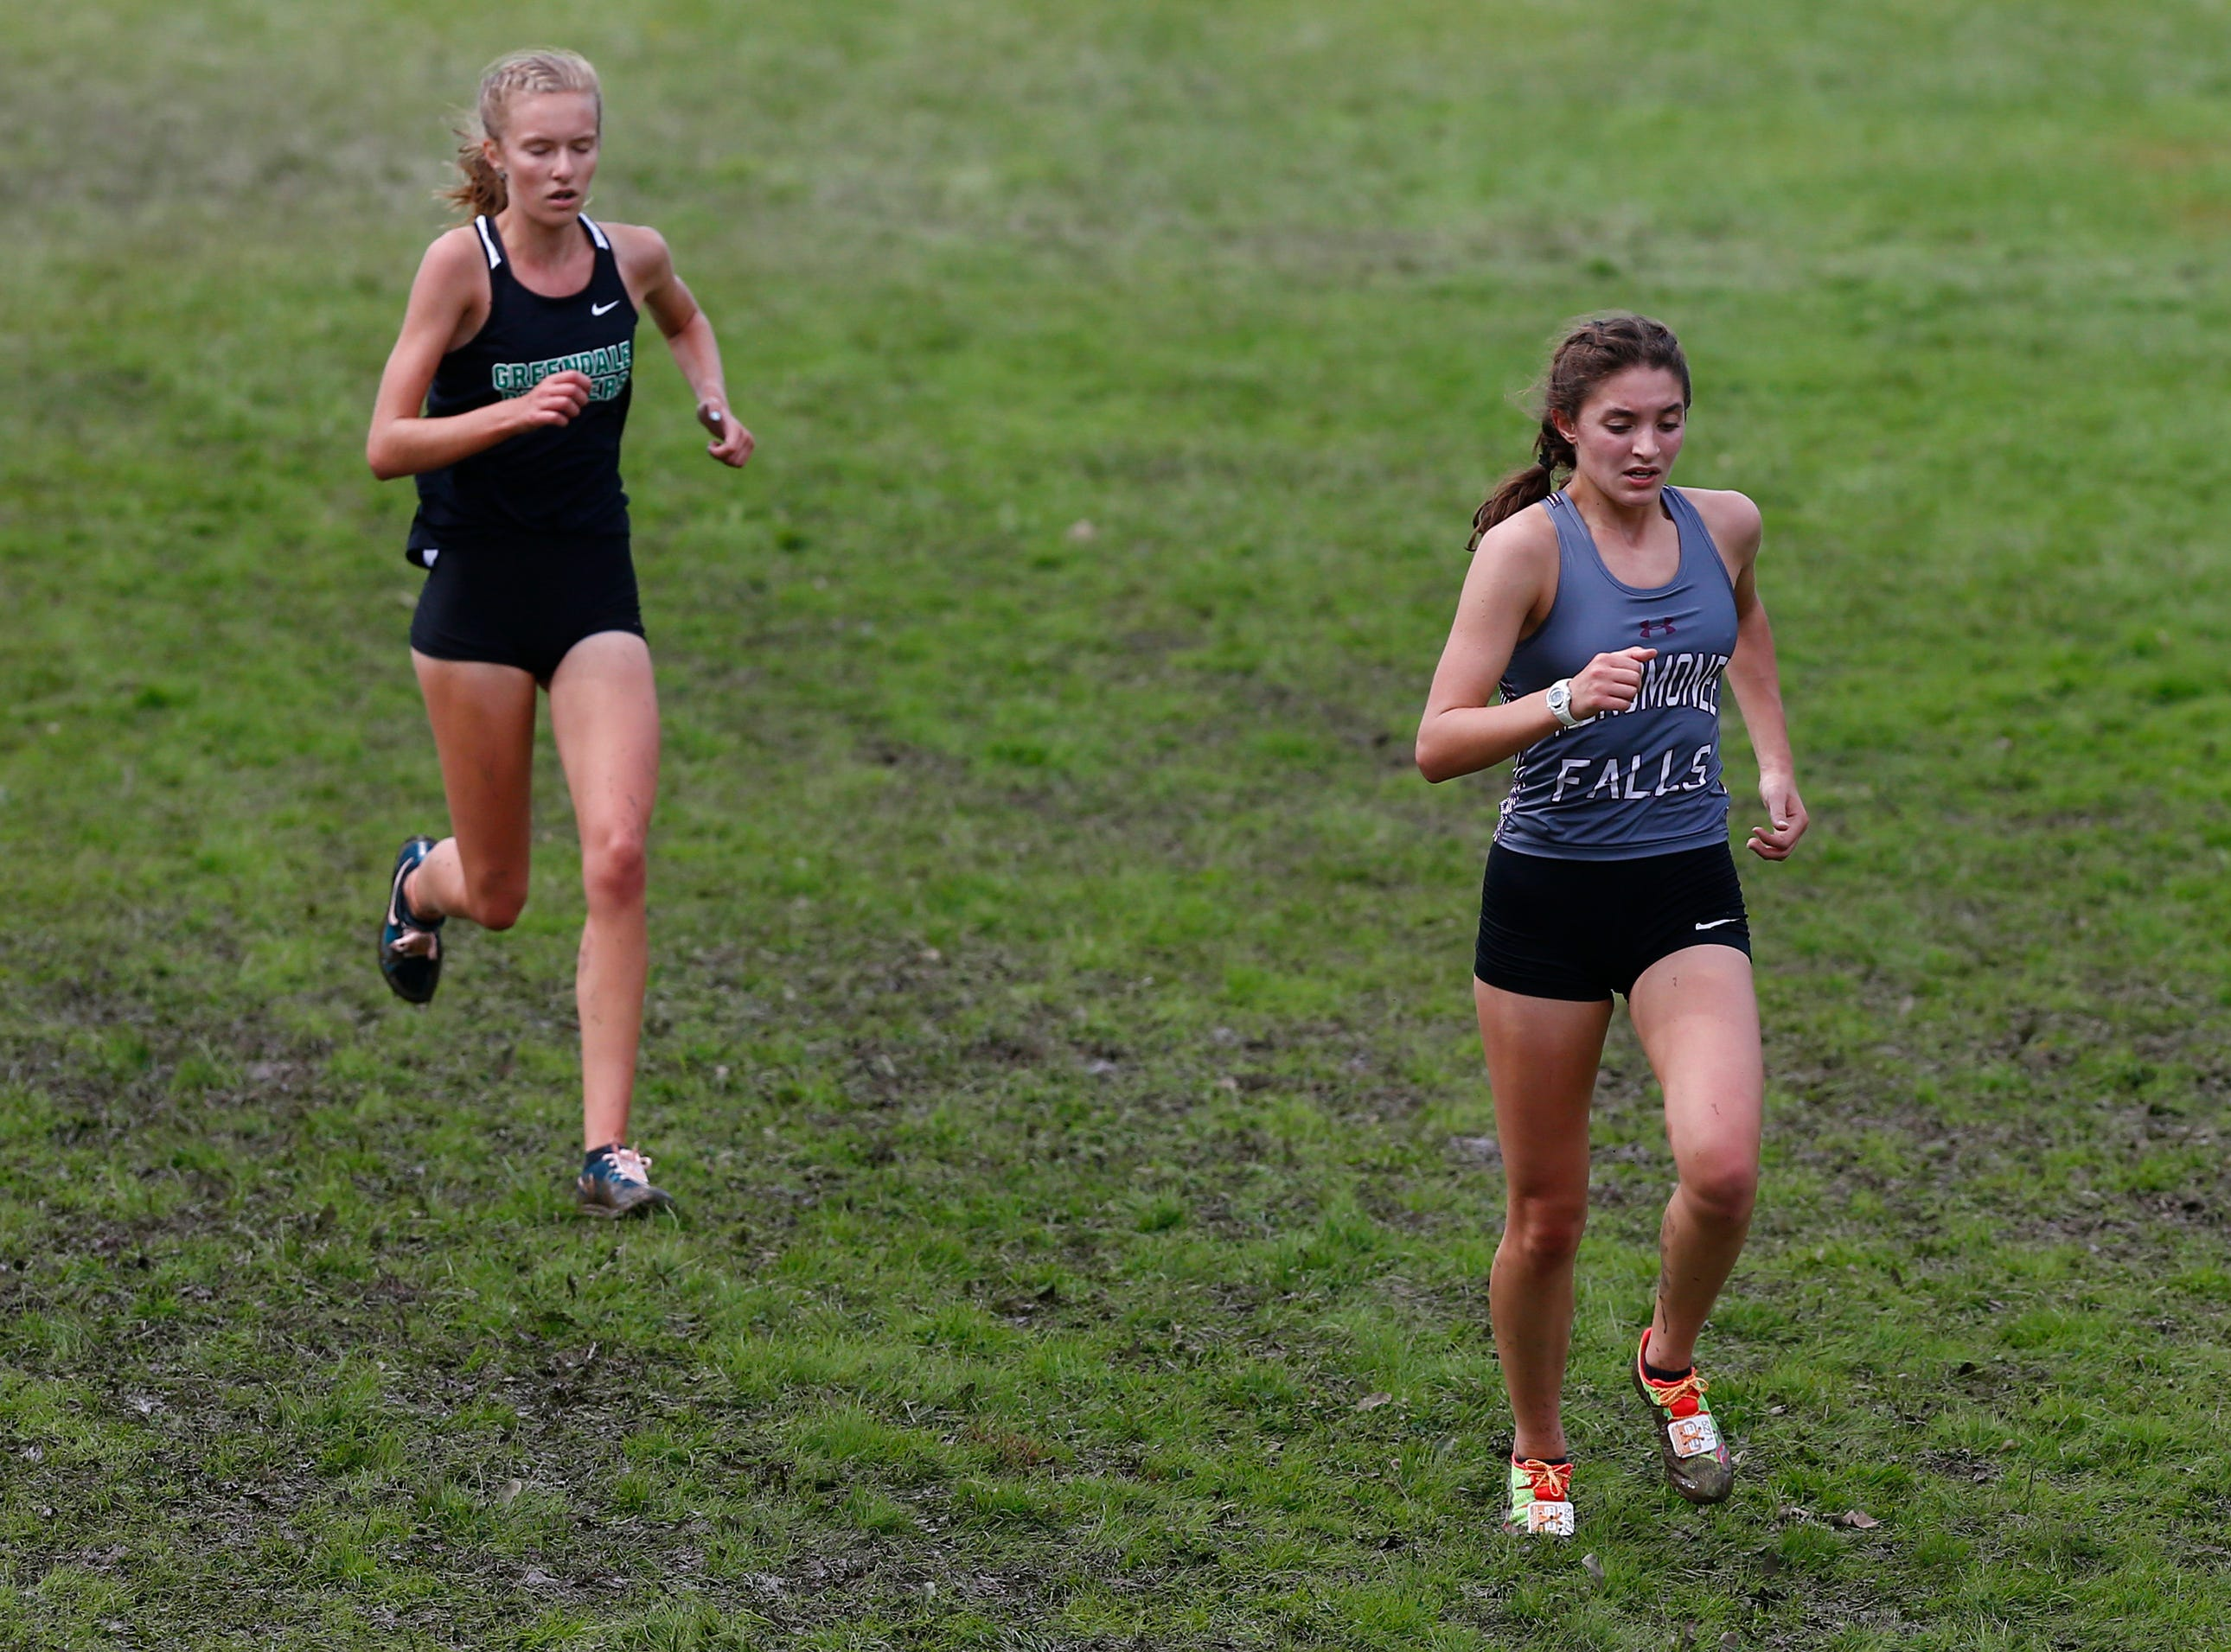 Greendale's Kelsey Sodemann (left) trails Menomonee Falls' Eileen Tocco head into the final stretch of the Menomonee Falls Matt Hadler Cross Country Invitational Sept. 8 at Rotary Park. Tocco finished 14th and Sodemann 15th of 76 runners.